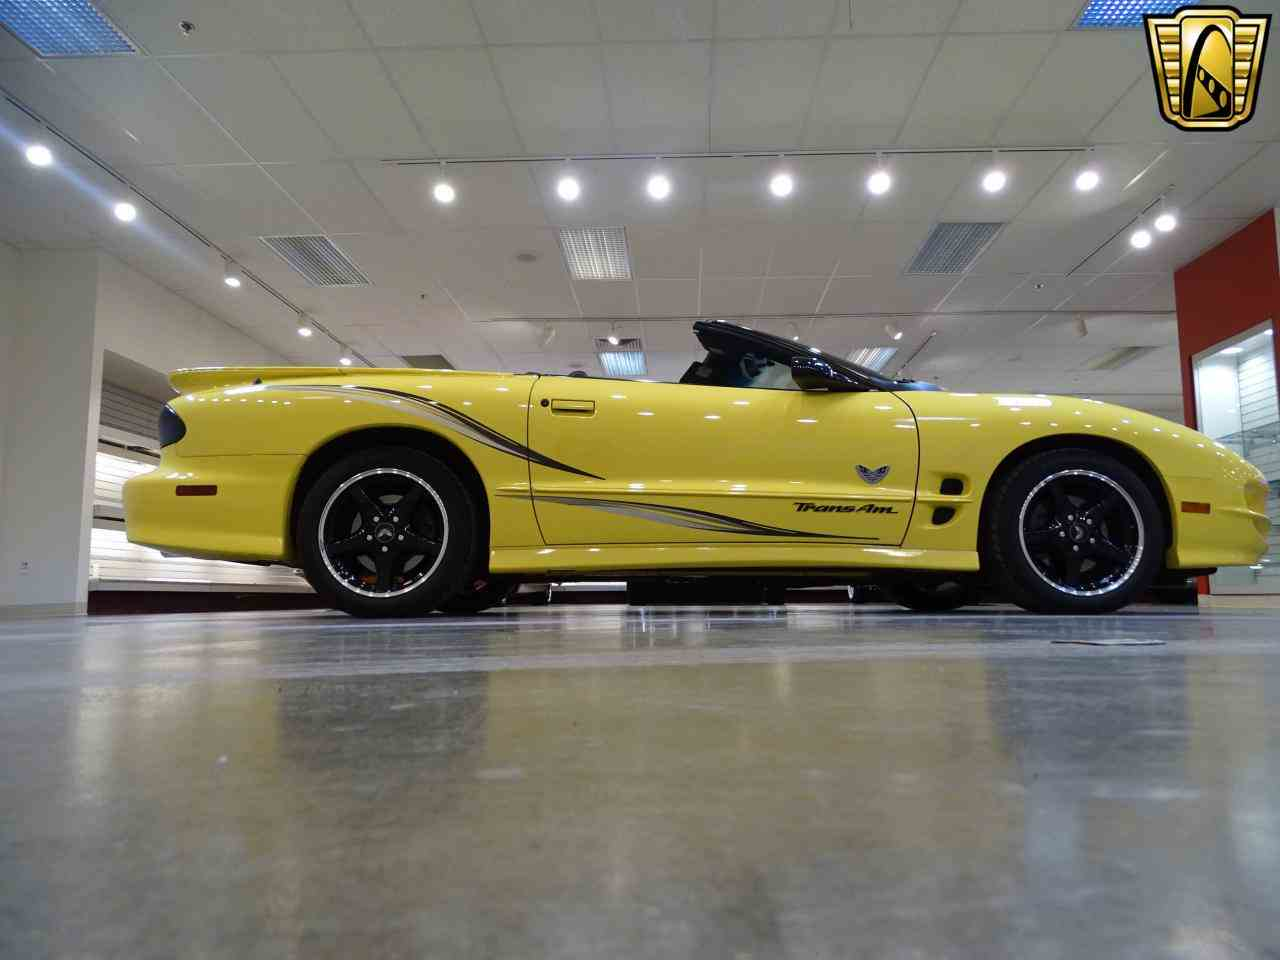 Large Picture of 2002 Pontiac Firebird located in O'Fallon Illinois Offered by Gateway Classic Cars - St. Louis - KE64